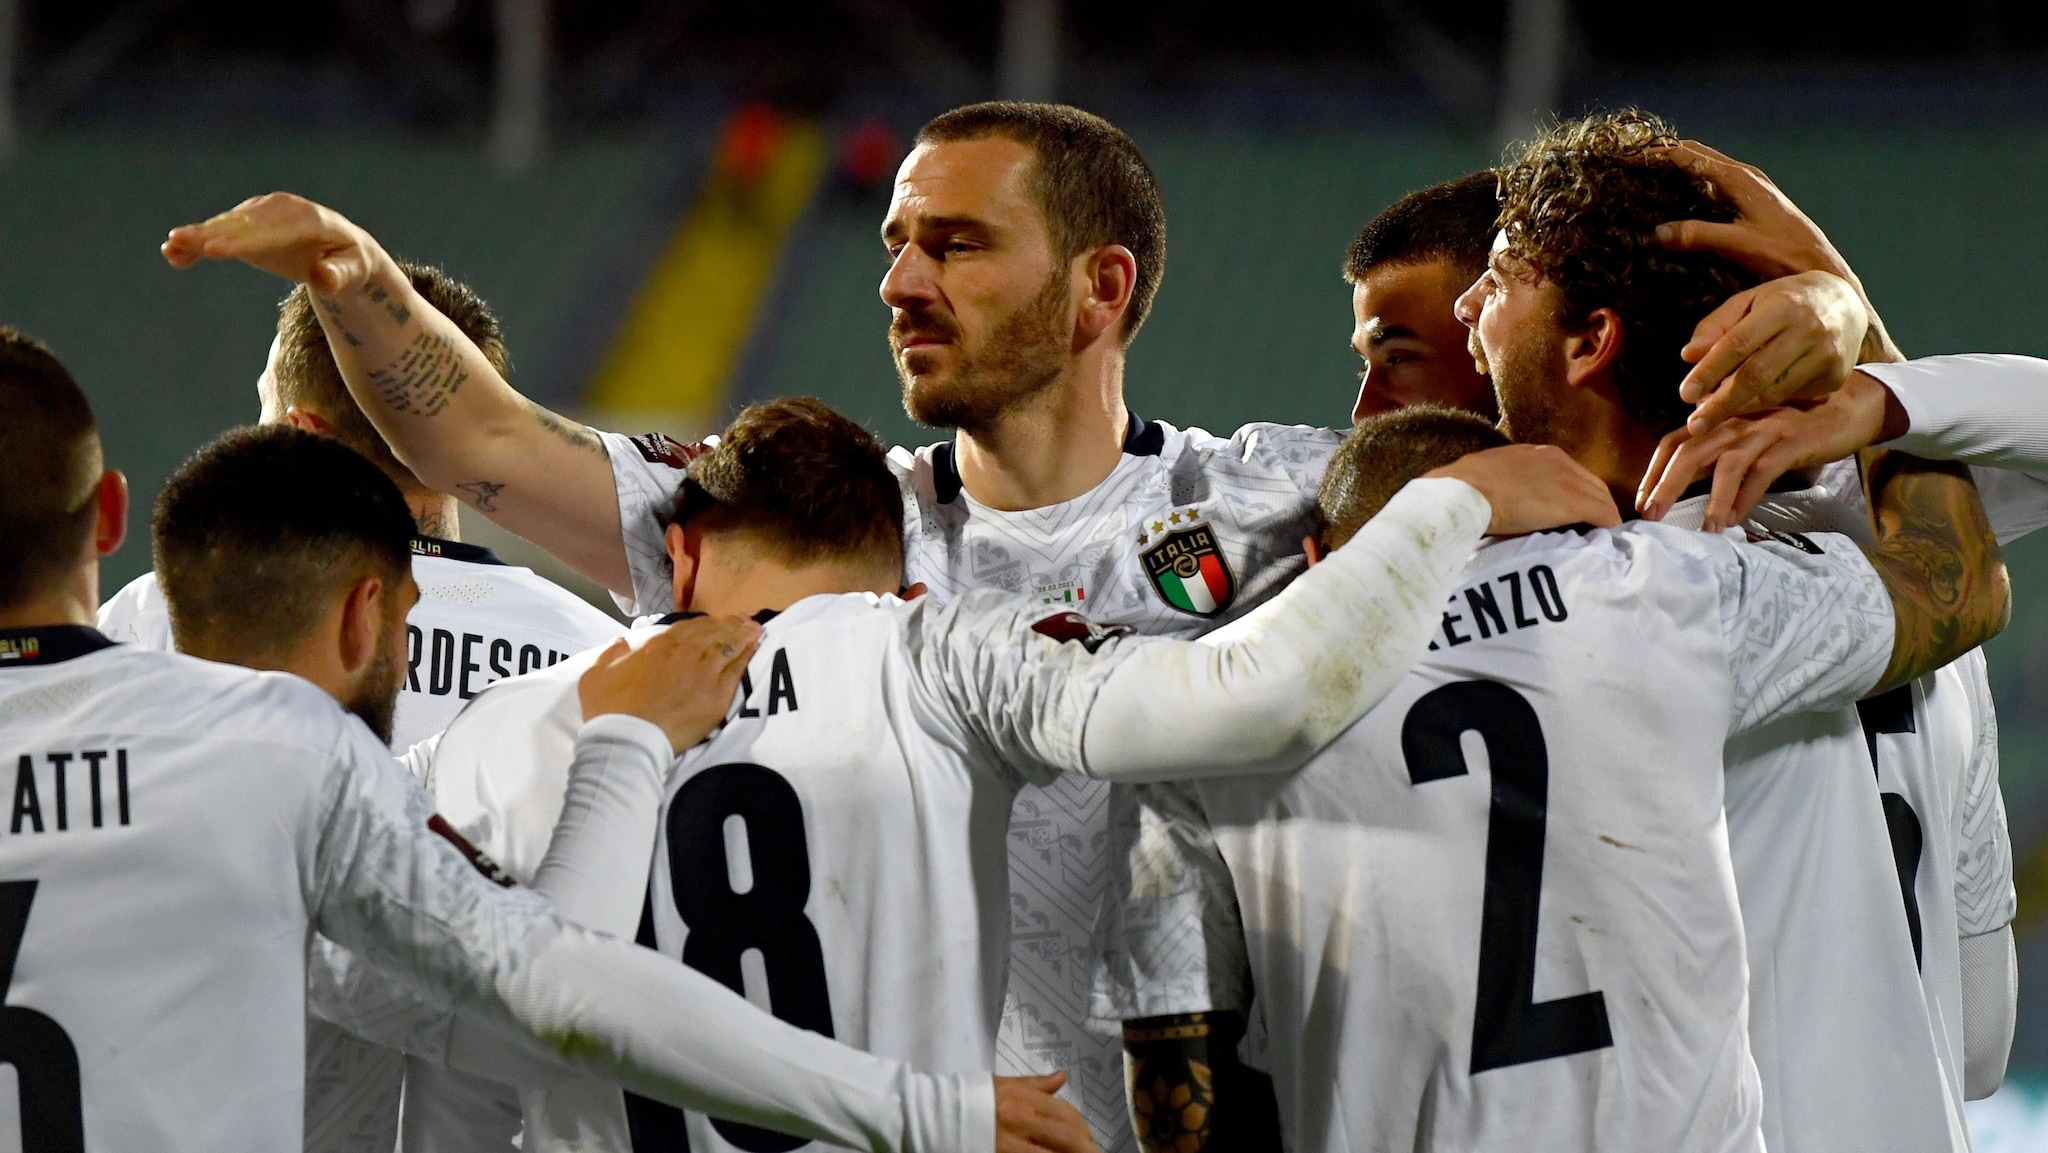 European Qualifiers for 2022 World Cup: all the fixtures and results